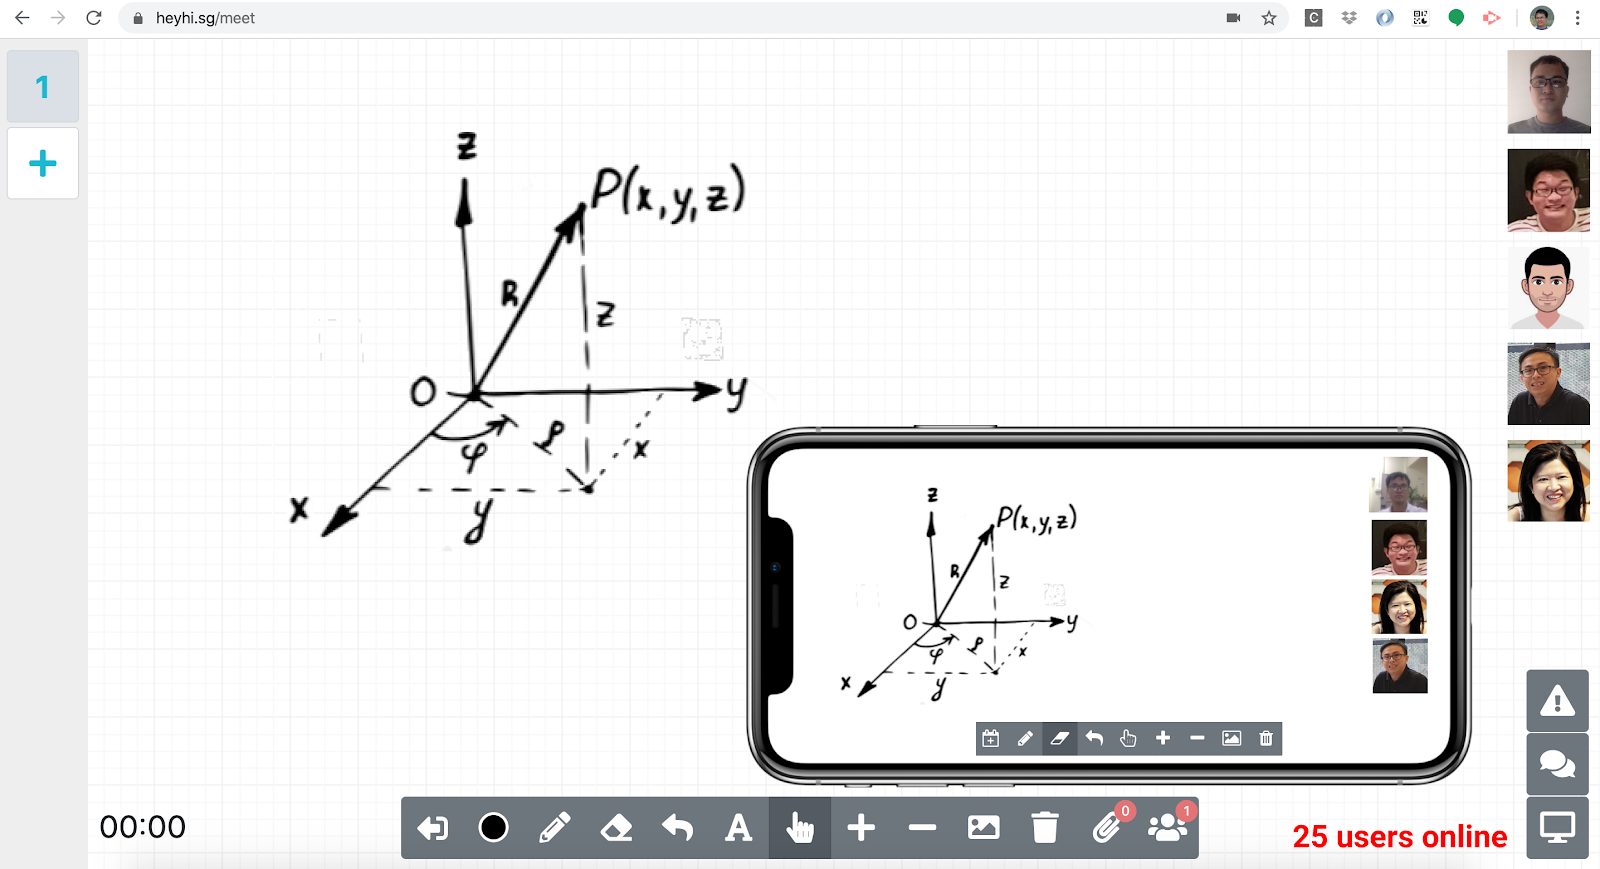 HeyHi's online whiteboard is accessible across a range of devices